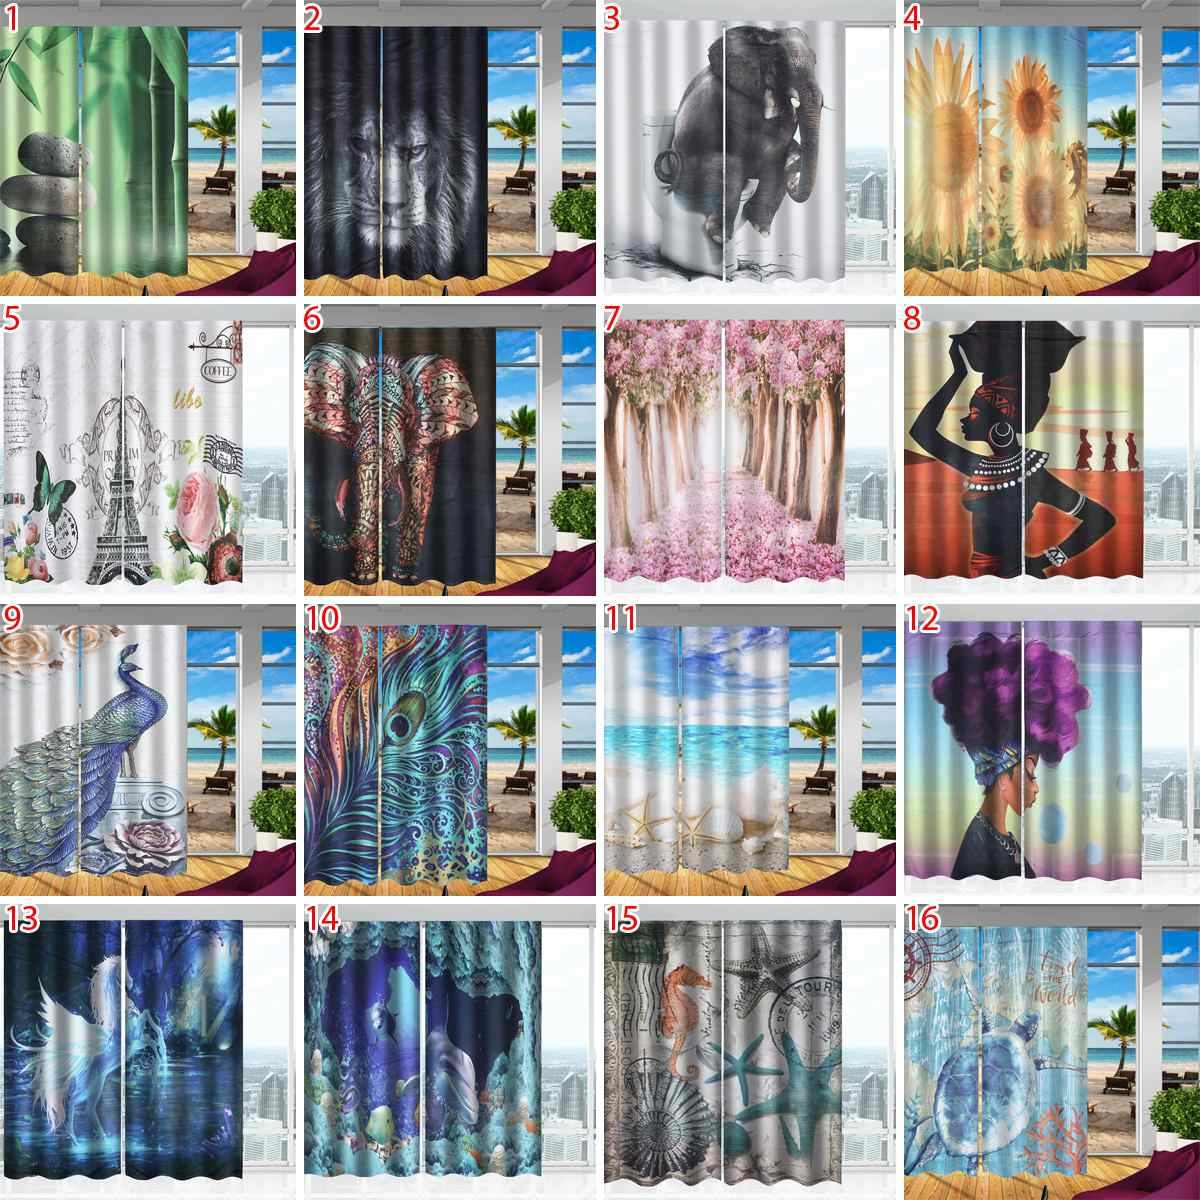 3D Print Window Curtains Multiple styles 3D Curtain 150*166cm 2Pcs/Set Window Curtain Modern bedroom Living Room Curtains